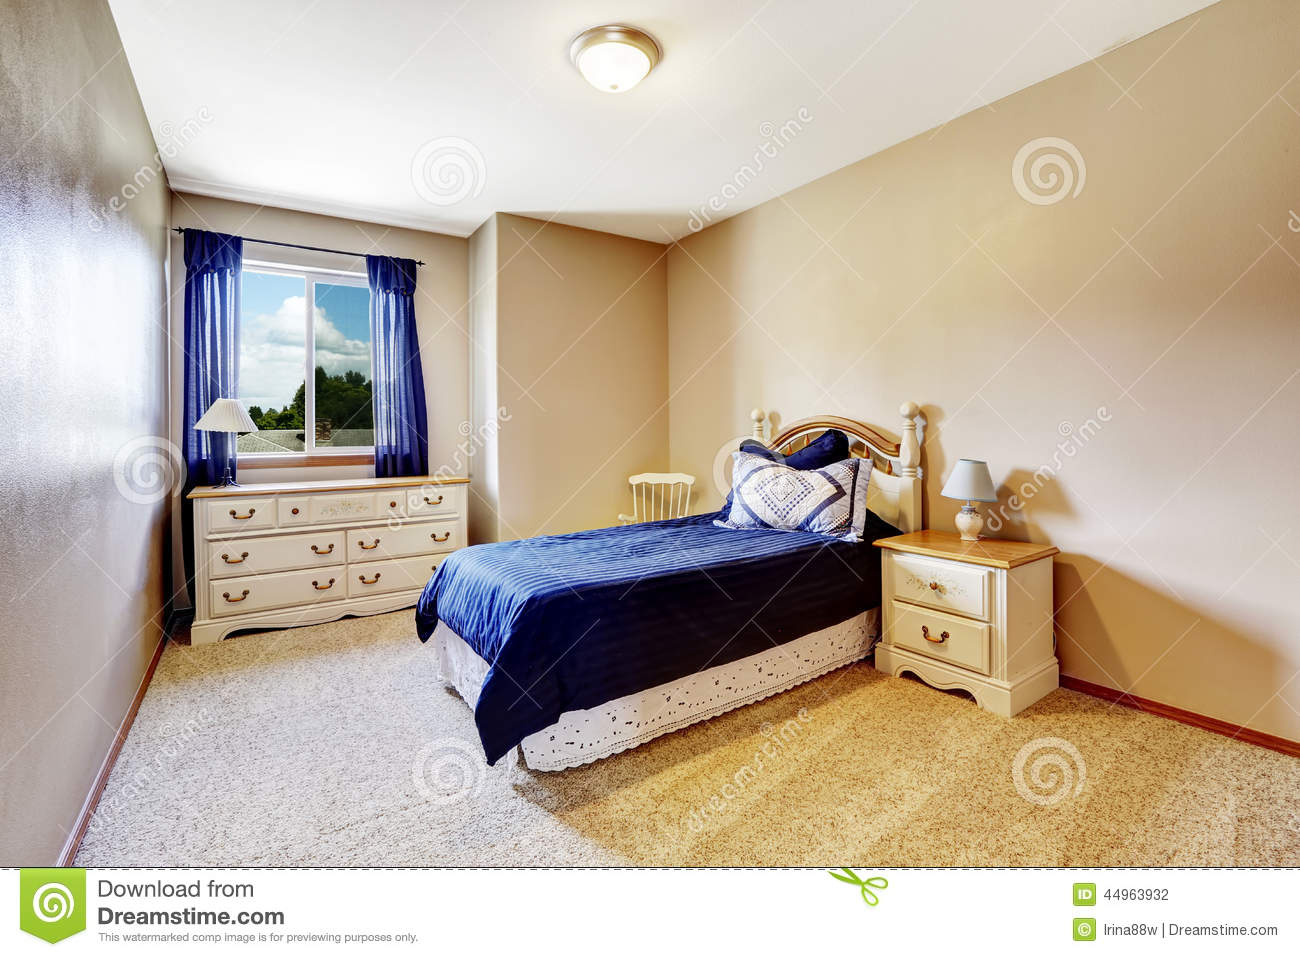 Bedroom Interior With Navy Bedding And Curtains Stock Photo ...